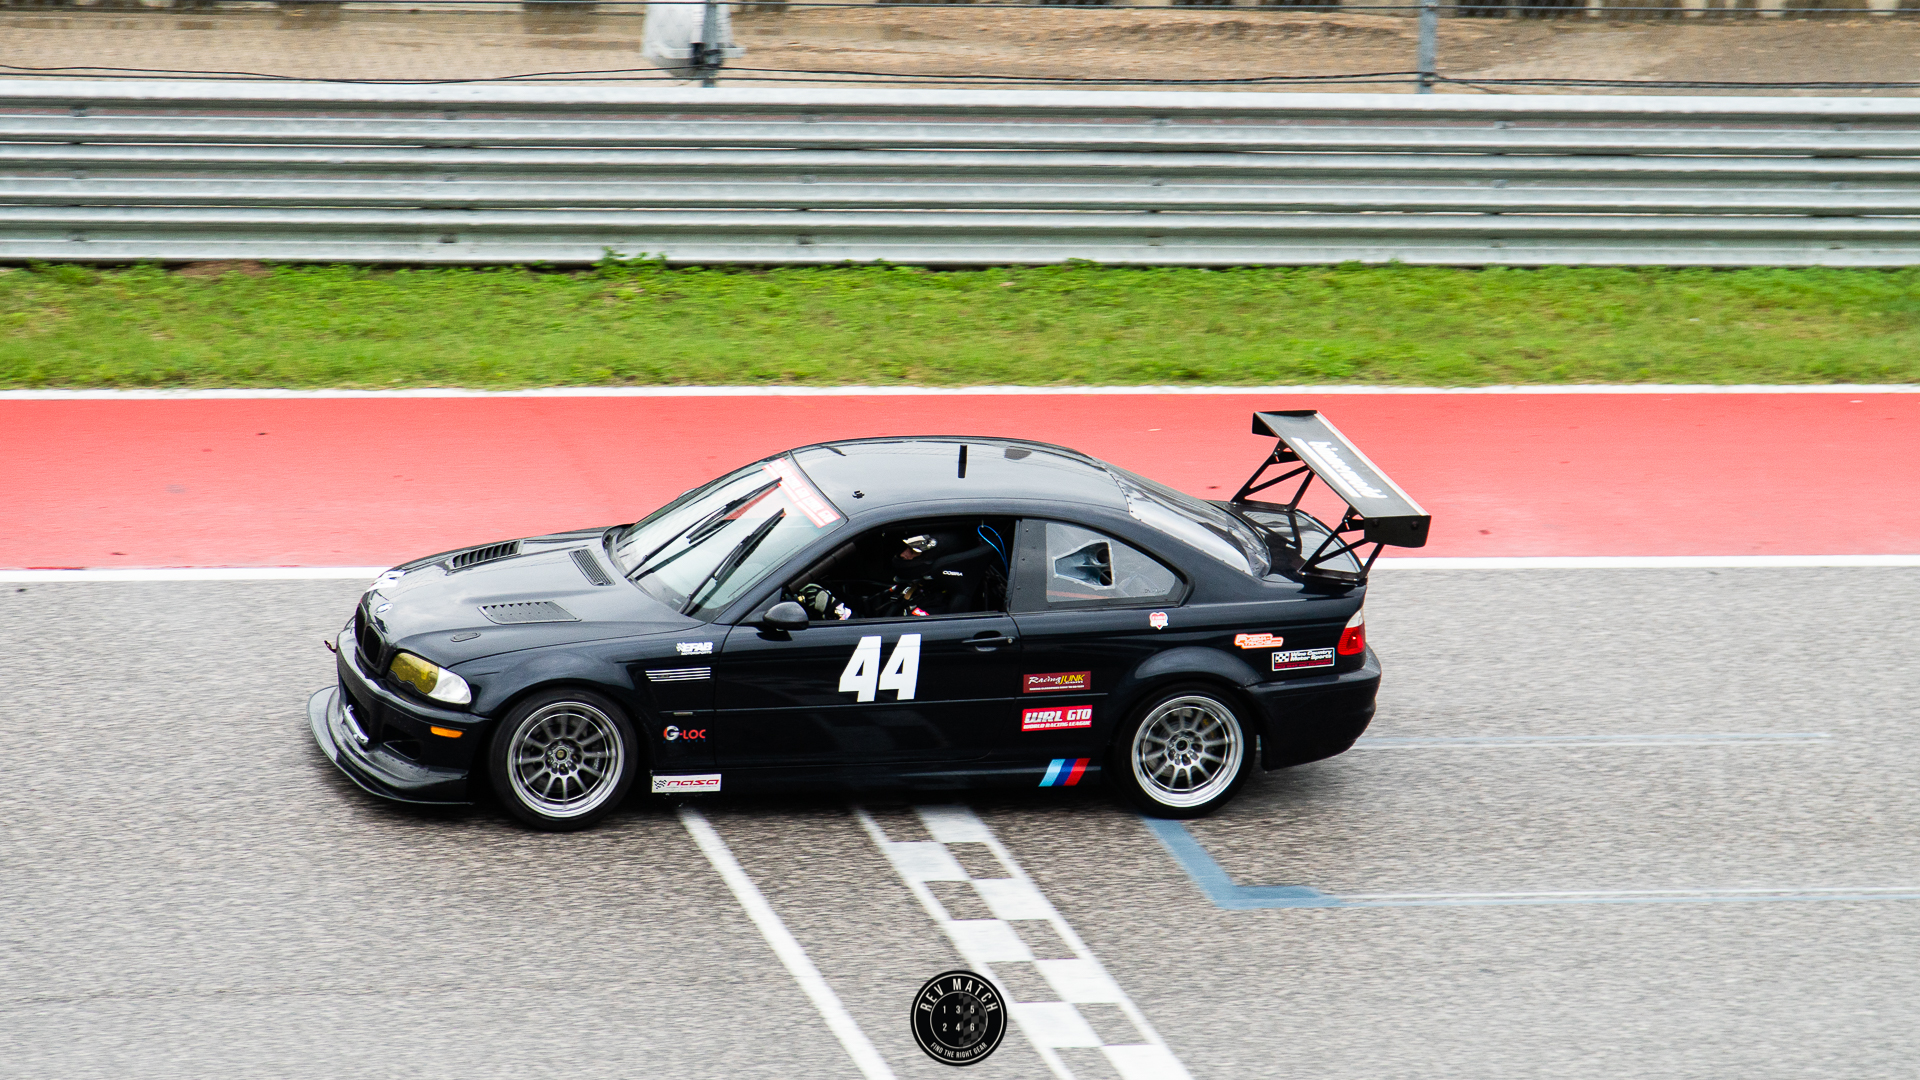 Edge Addict COTA May 2019 Rev Match Media-57.jpg